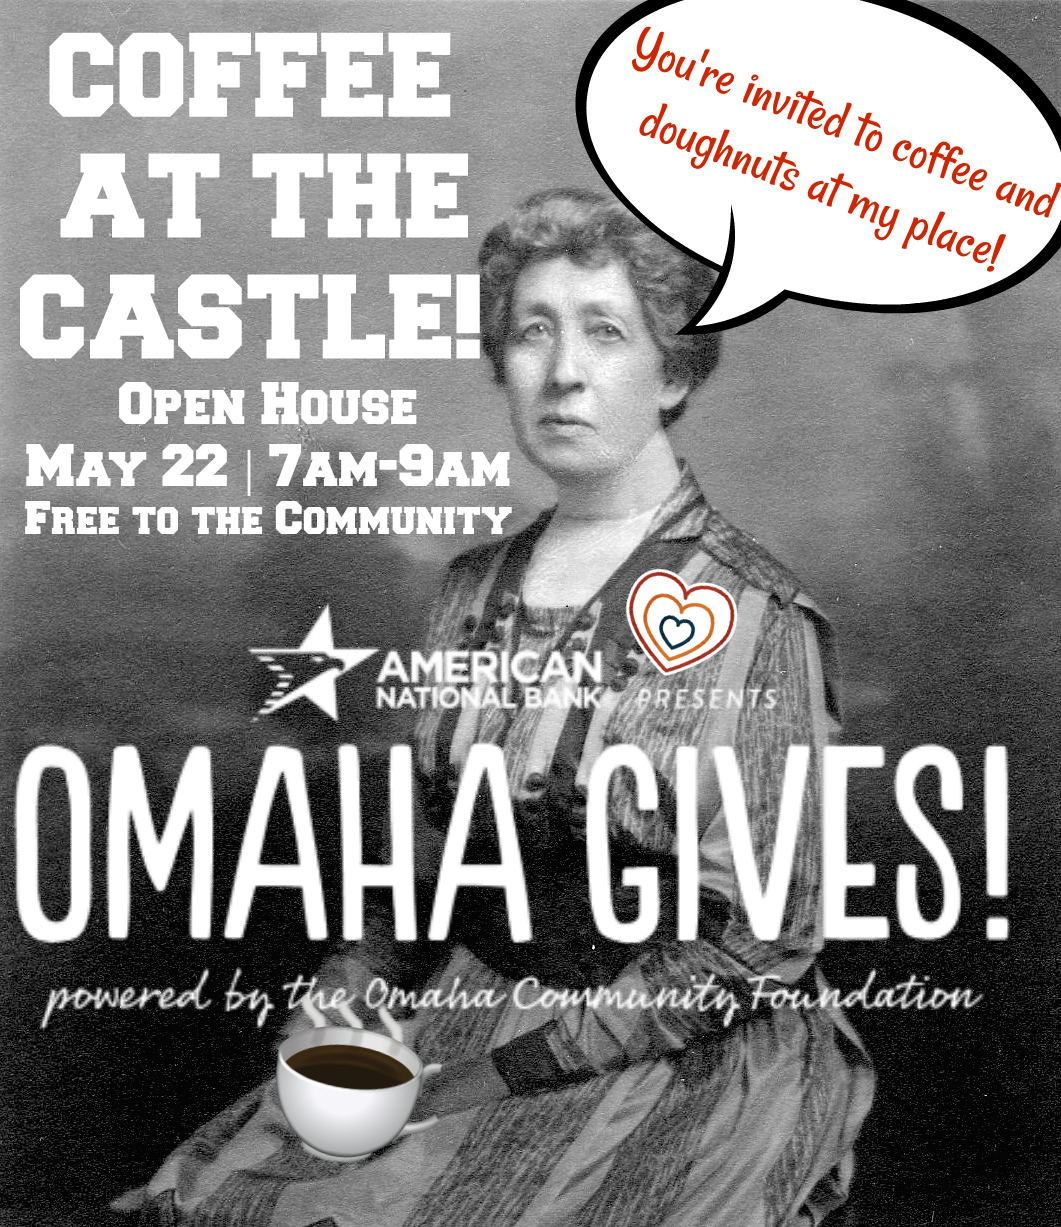 Omaha Gives - Coffee At the Castle